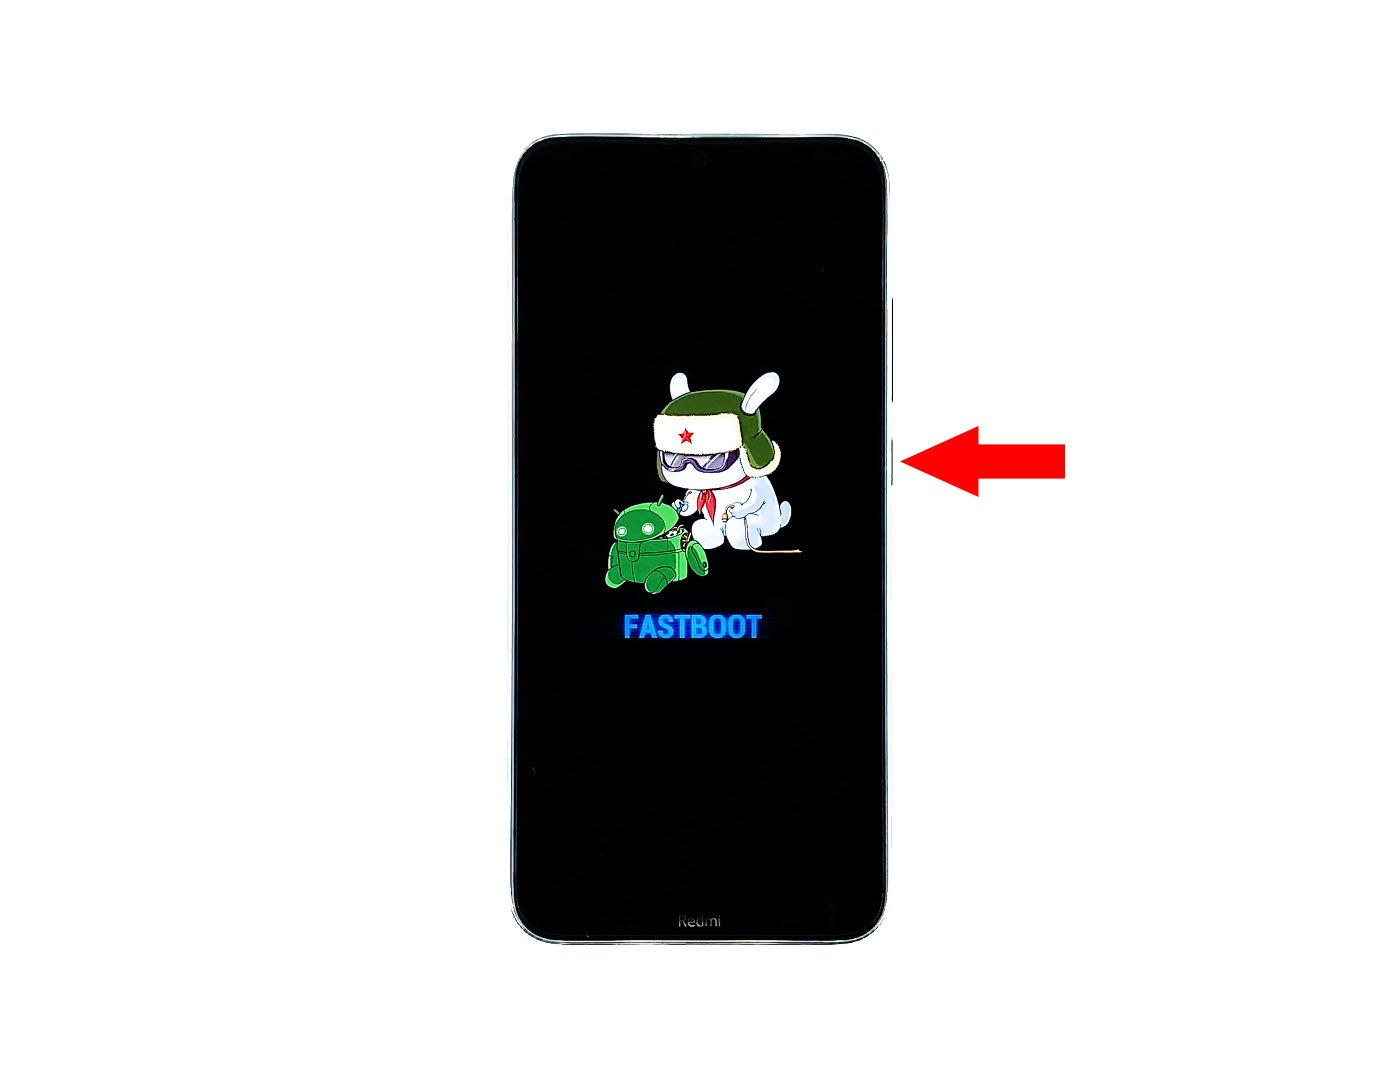 redmi note 8 stuck on fastboot screen